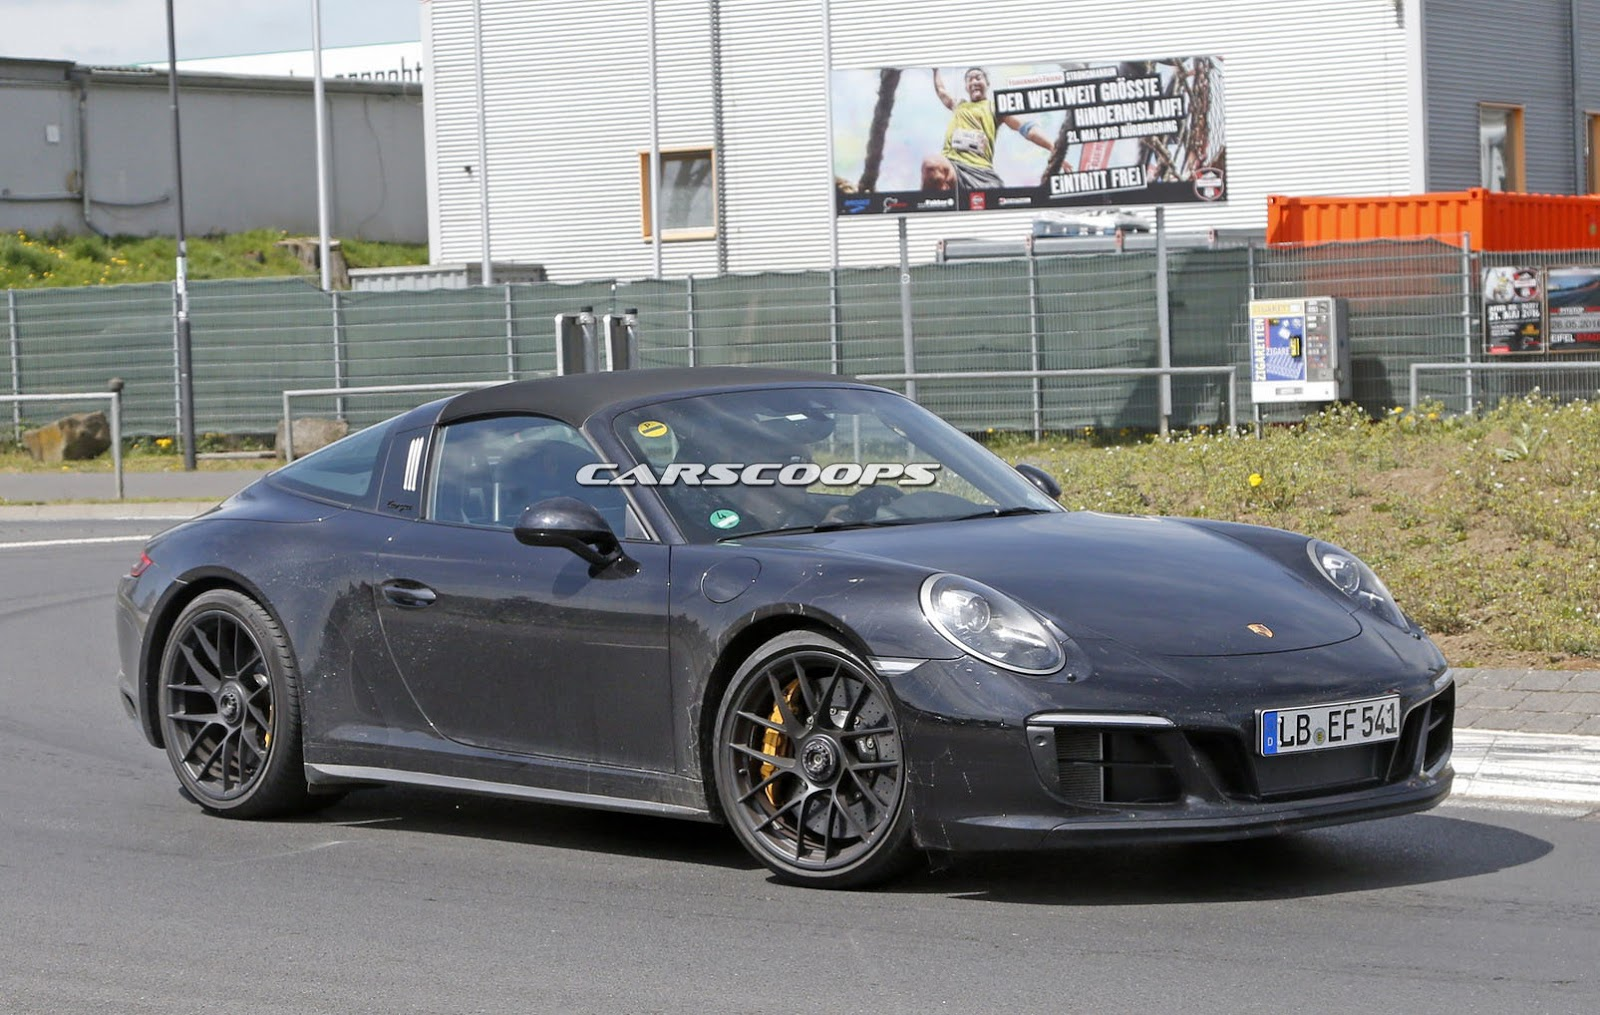 2017 porsche 911 gts targa spied undisguised gets turbo six carscoops. Black Bedroom Furniture Sets. Home Design Ideas